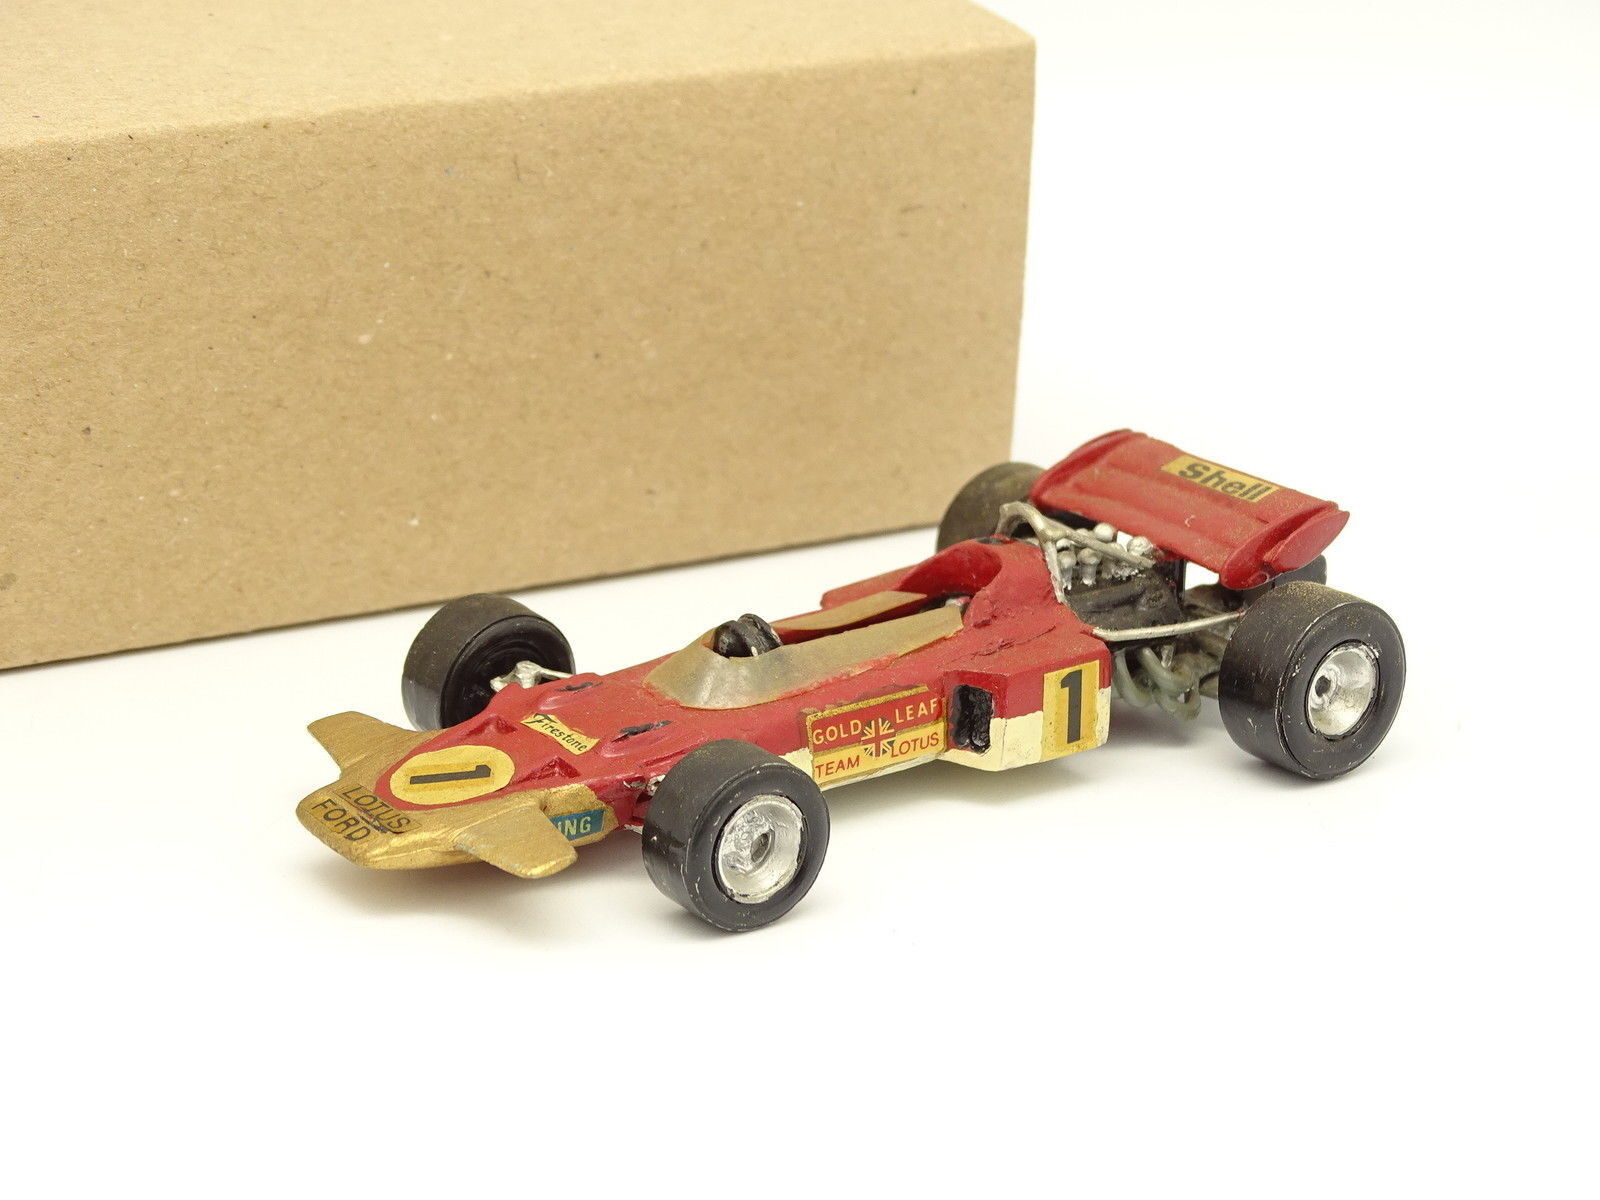 Kit Metal Montado 1 43 - F1 Lotus 49B Ford oro Leaf N°1 Hill